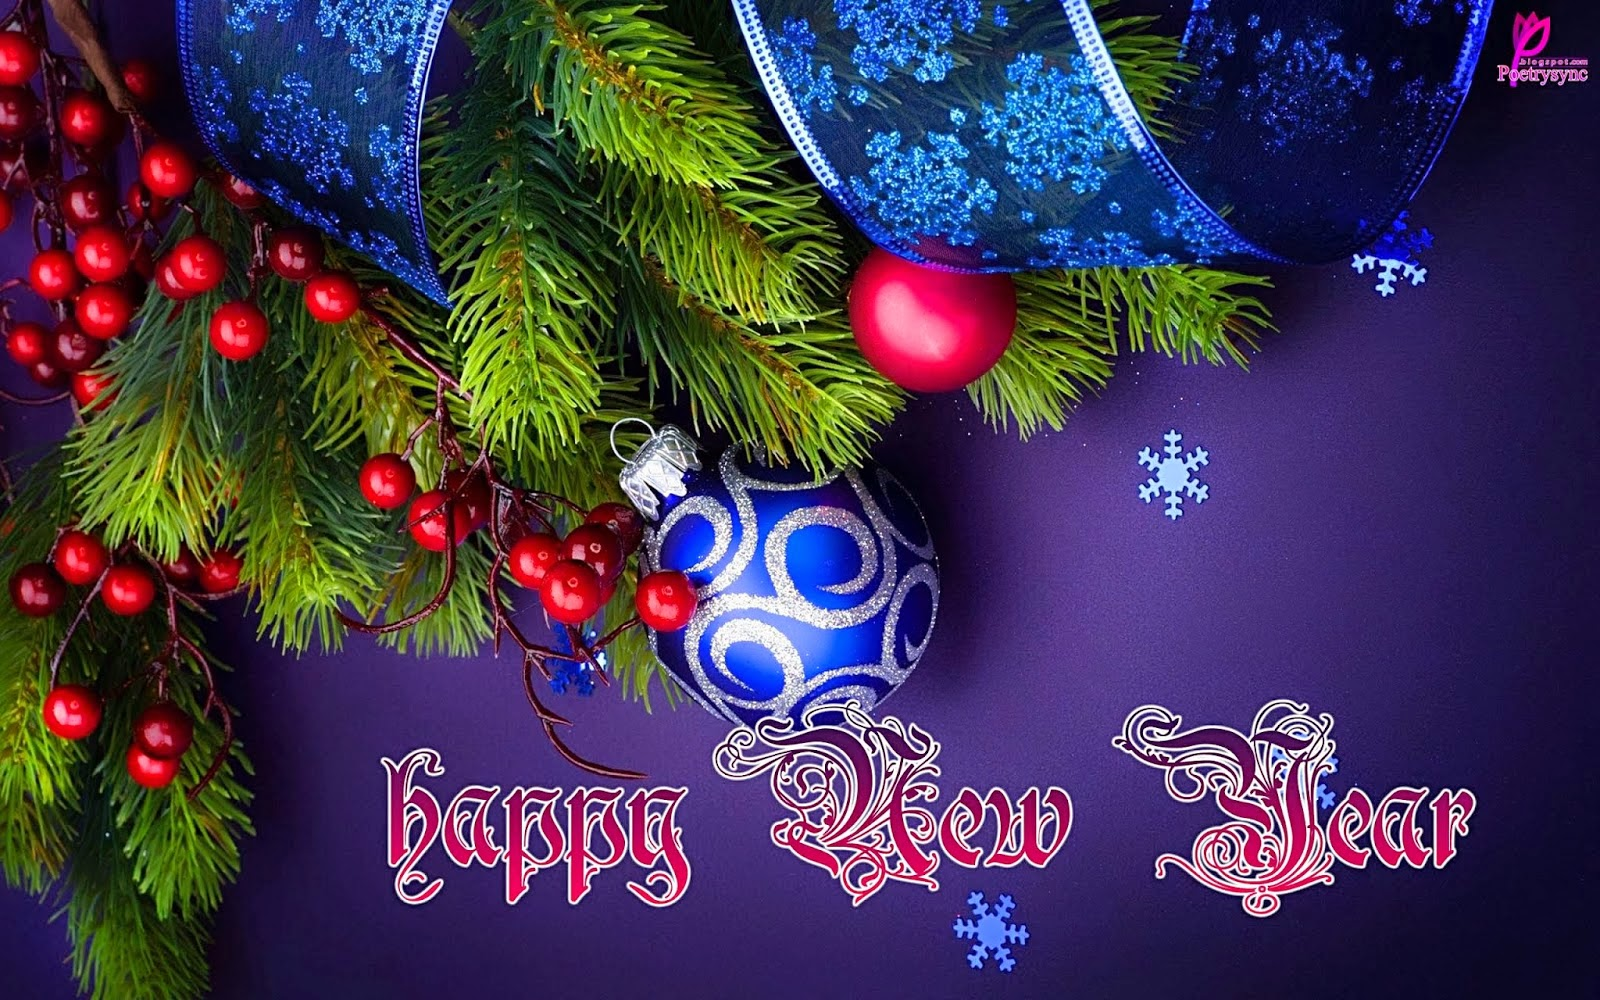 Happy New Year 2015 New Is A Good Site For Wallpapers - Merry Christmas Hd Images 2018 , HD Wallpaper & Backgrounds